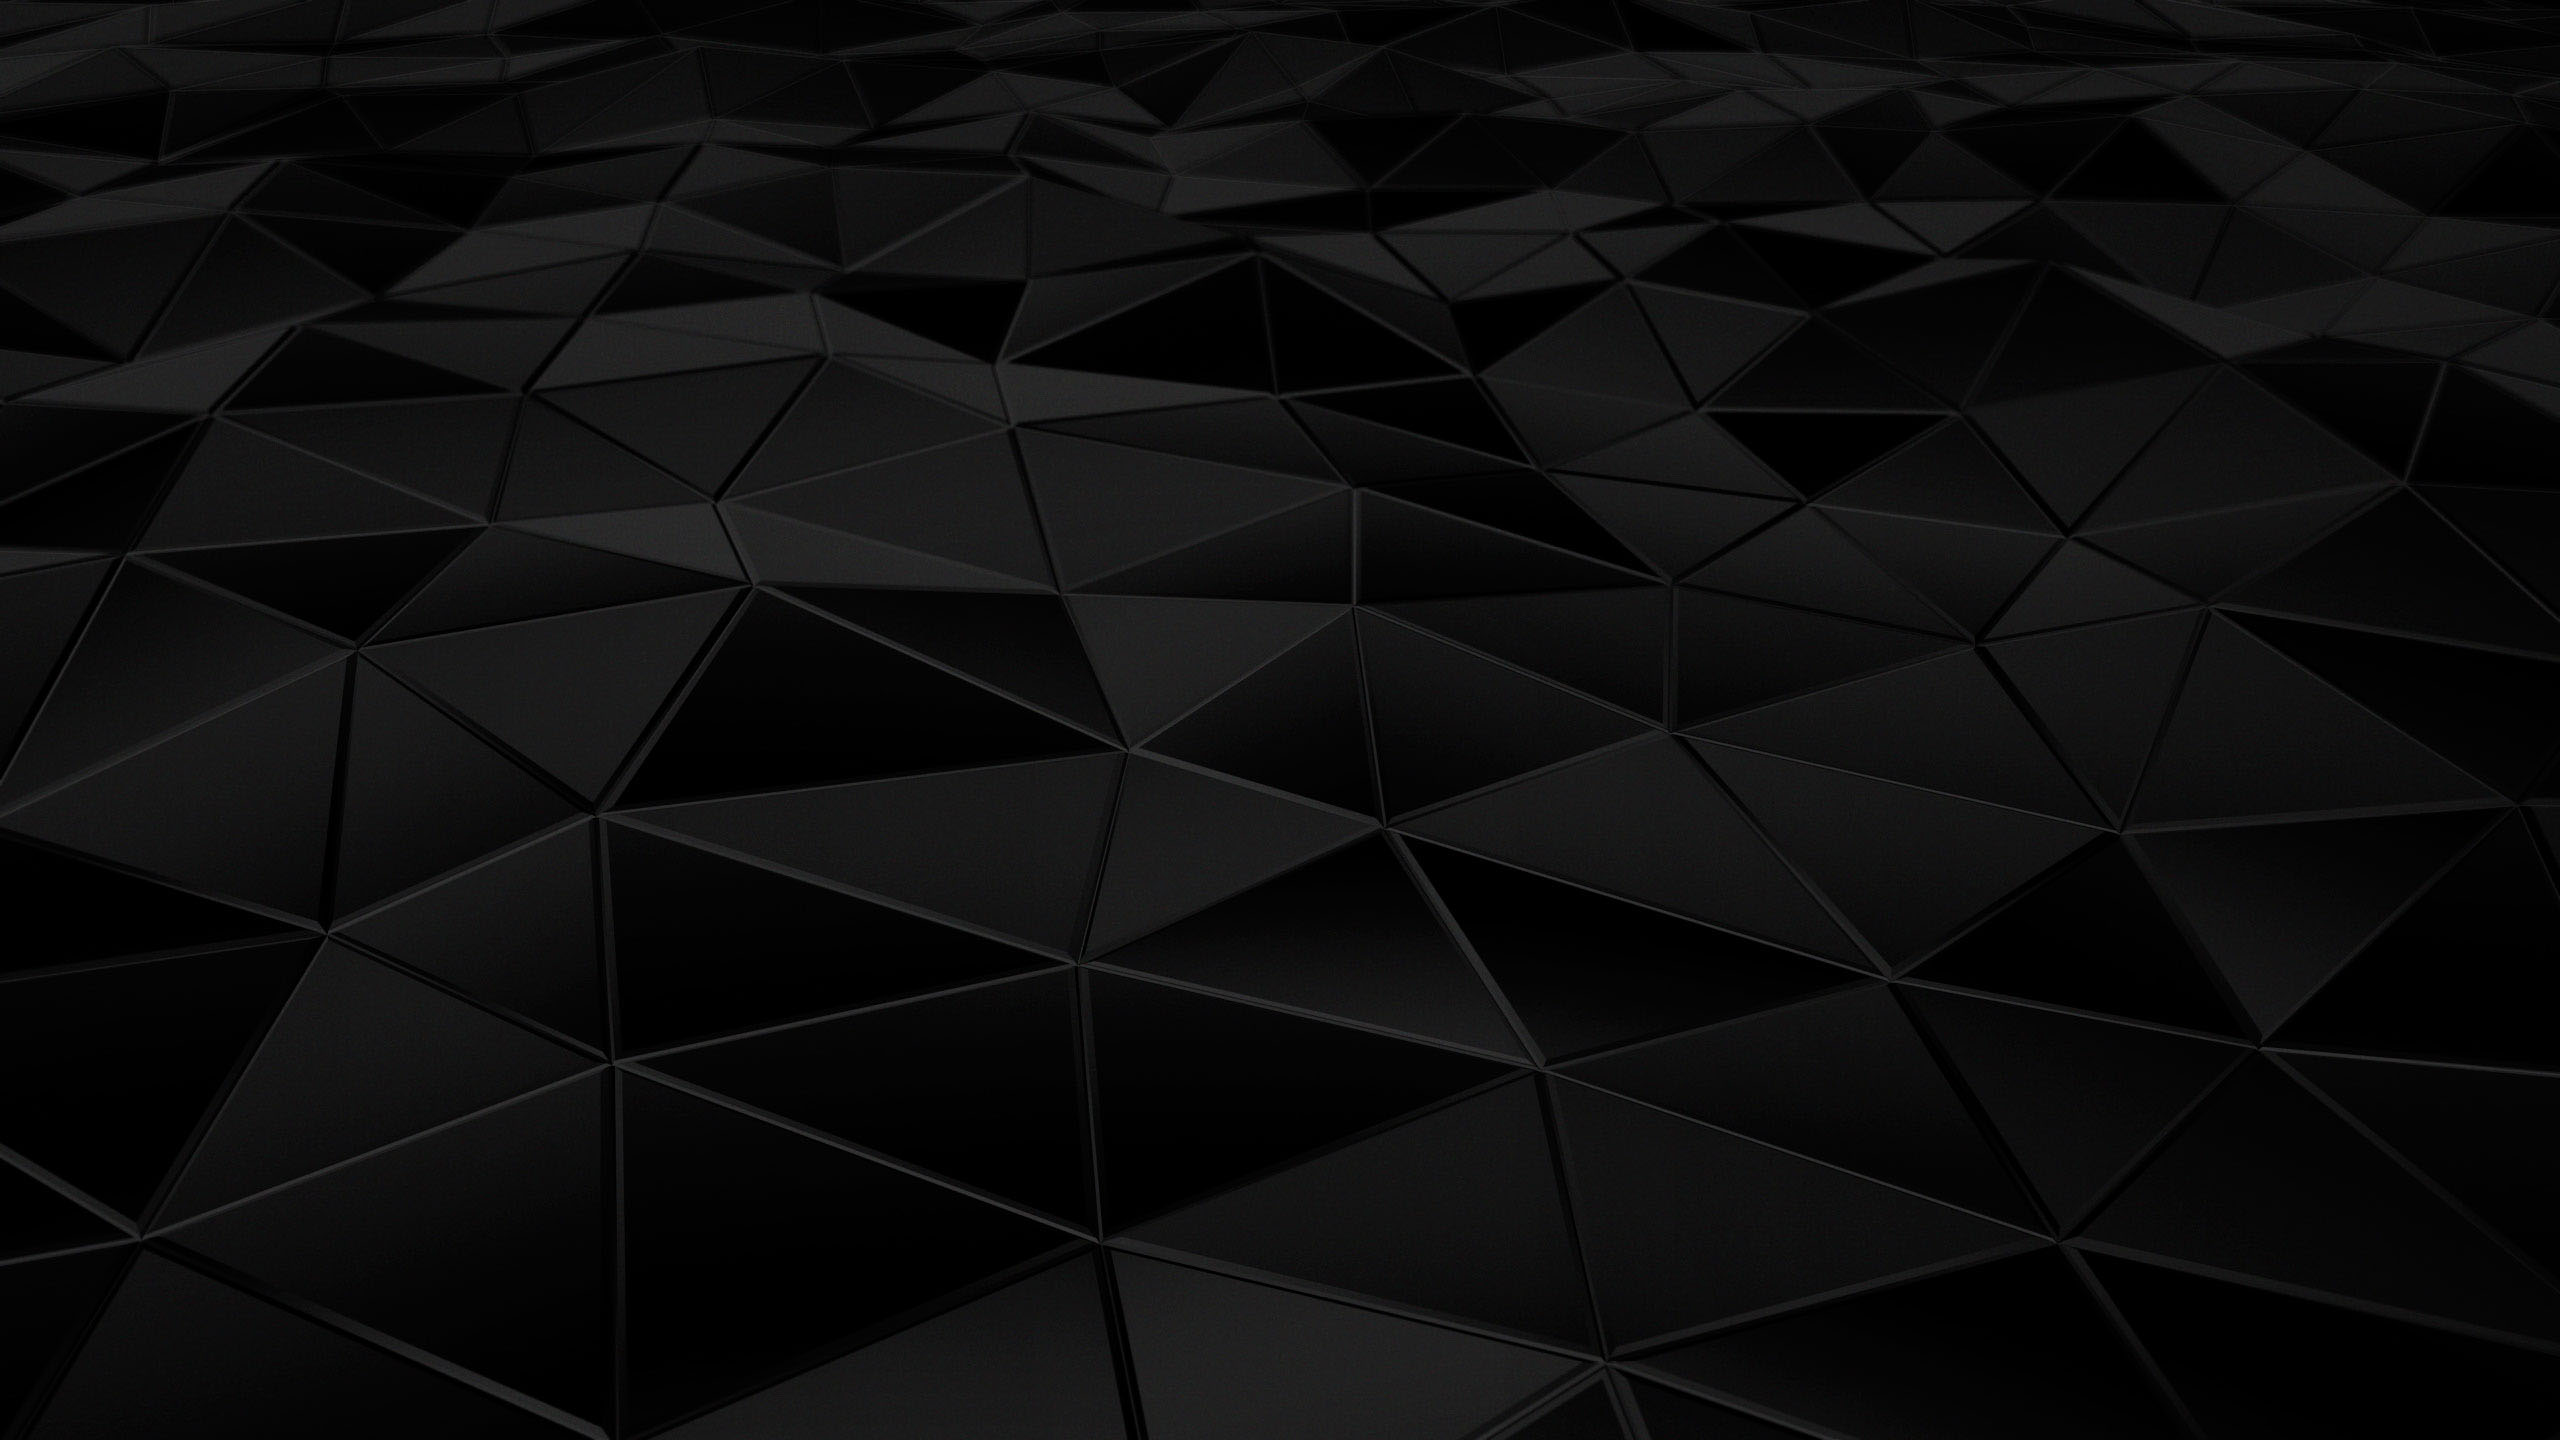 30 Black abstract Wallpapers HD Download 2560x1440